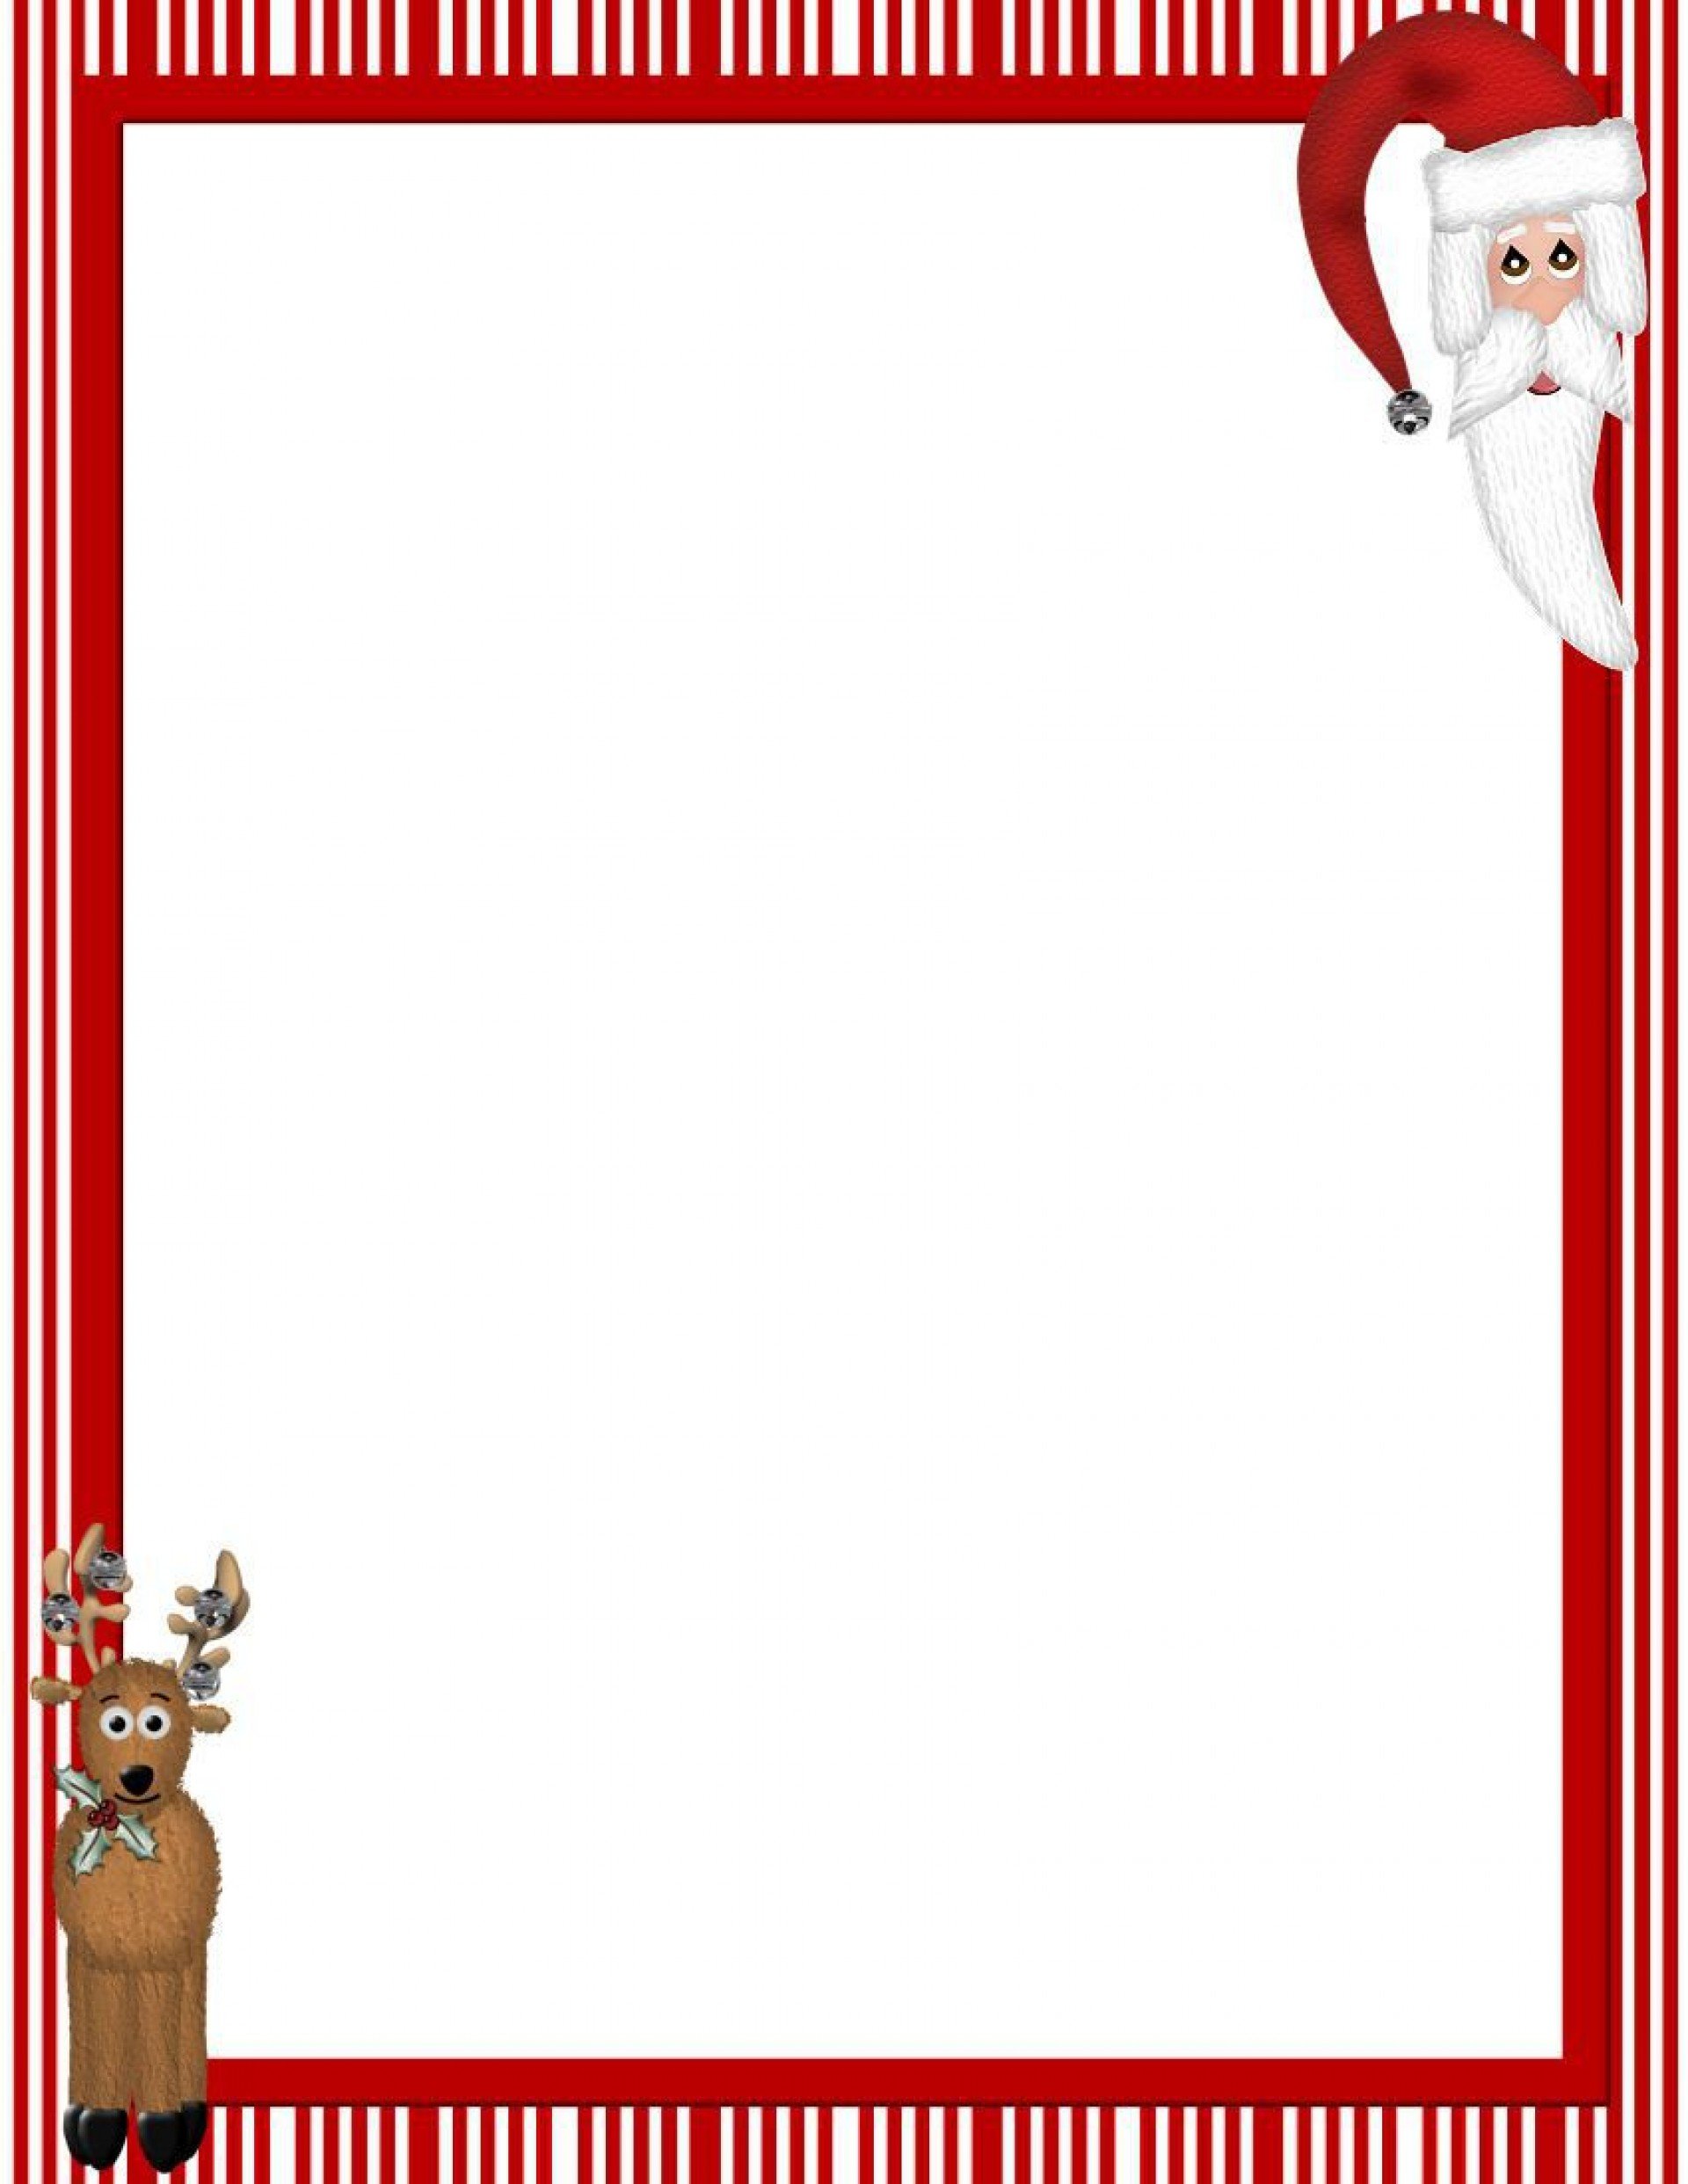 007 Fascinating Free Christma Template For Word Concept  Holiday Party Invitation Recipe Card Printable Stationery1920